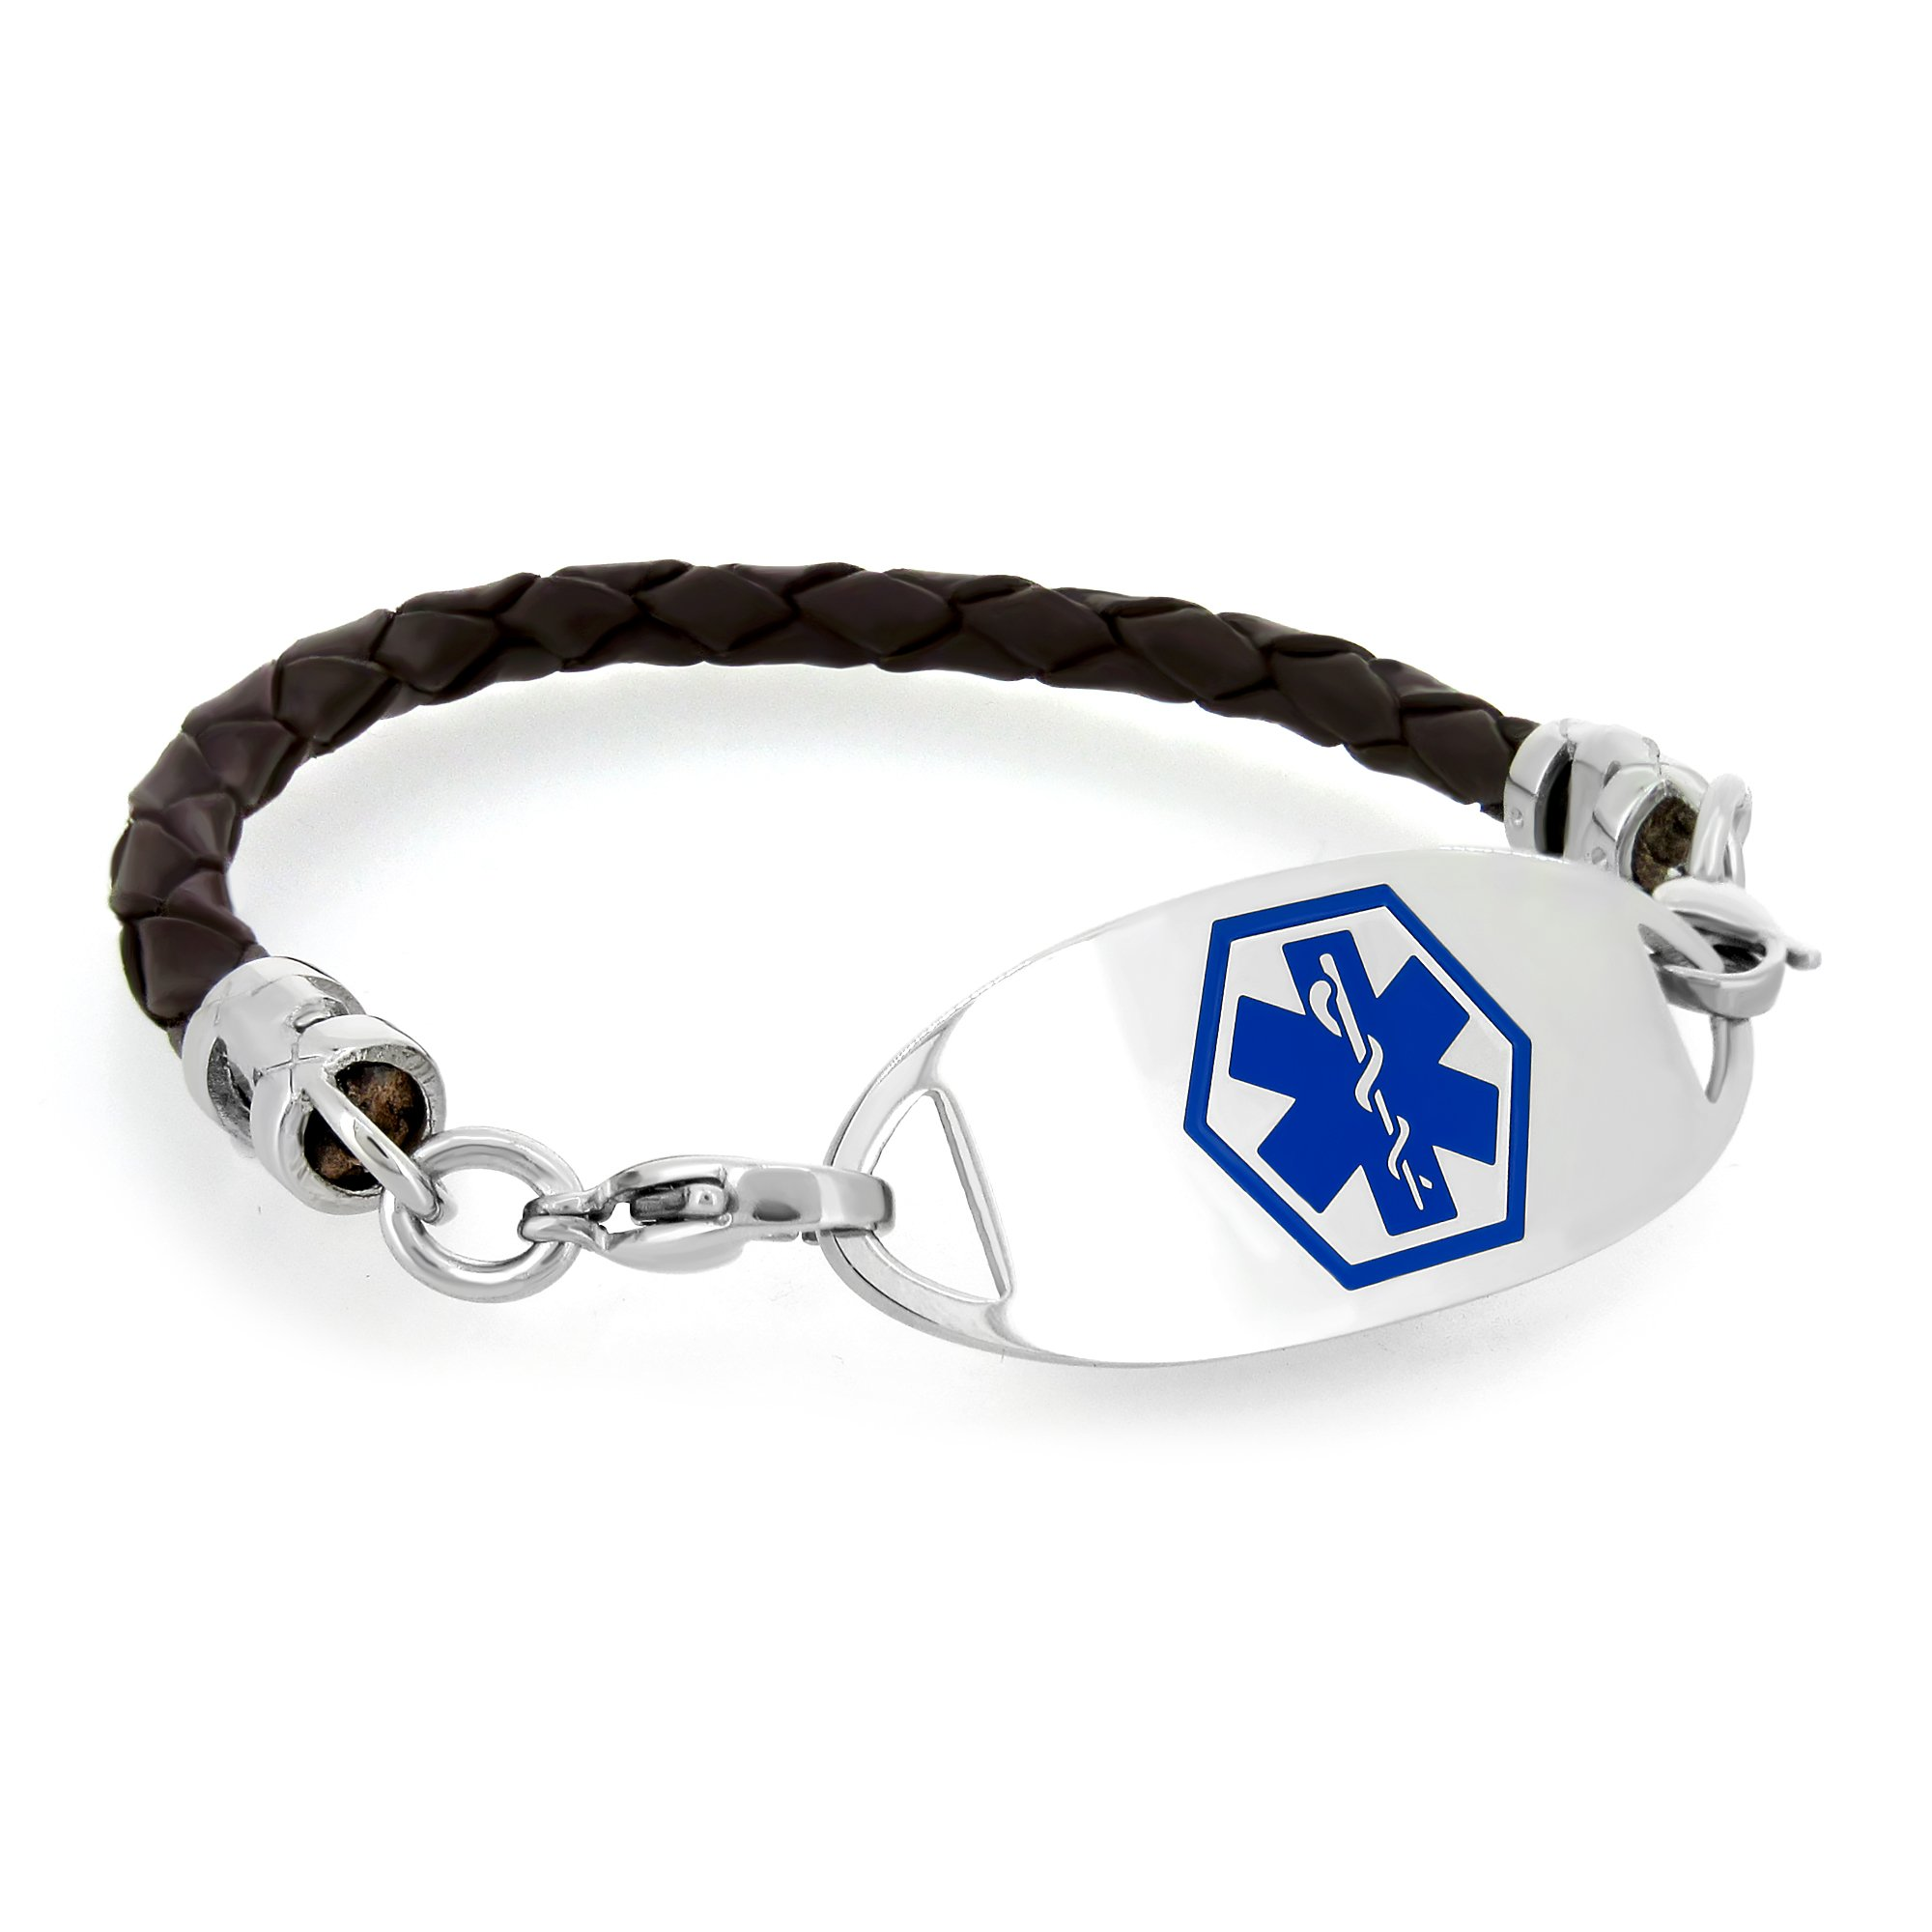 Kids Blue Medical Alert Bracelet